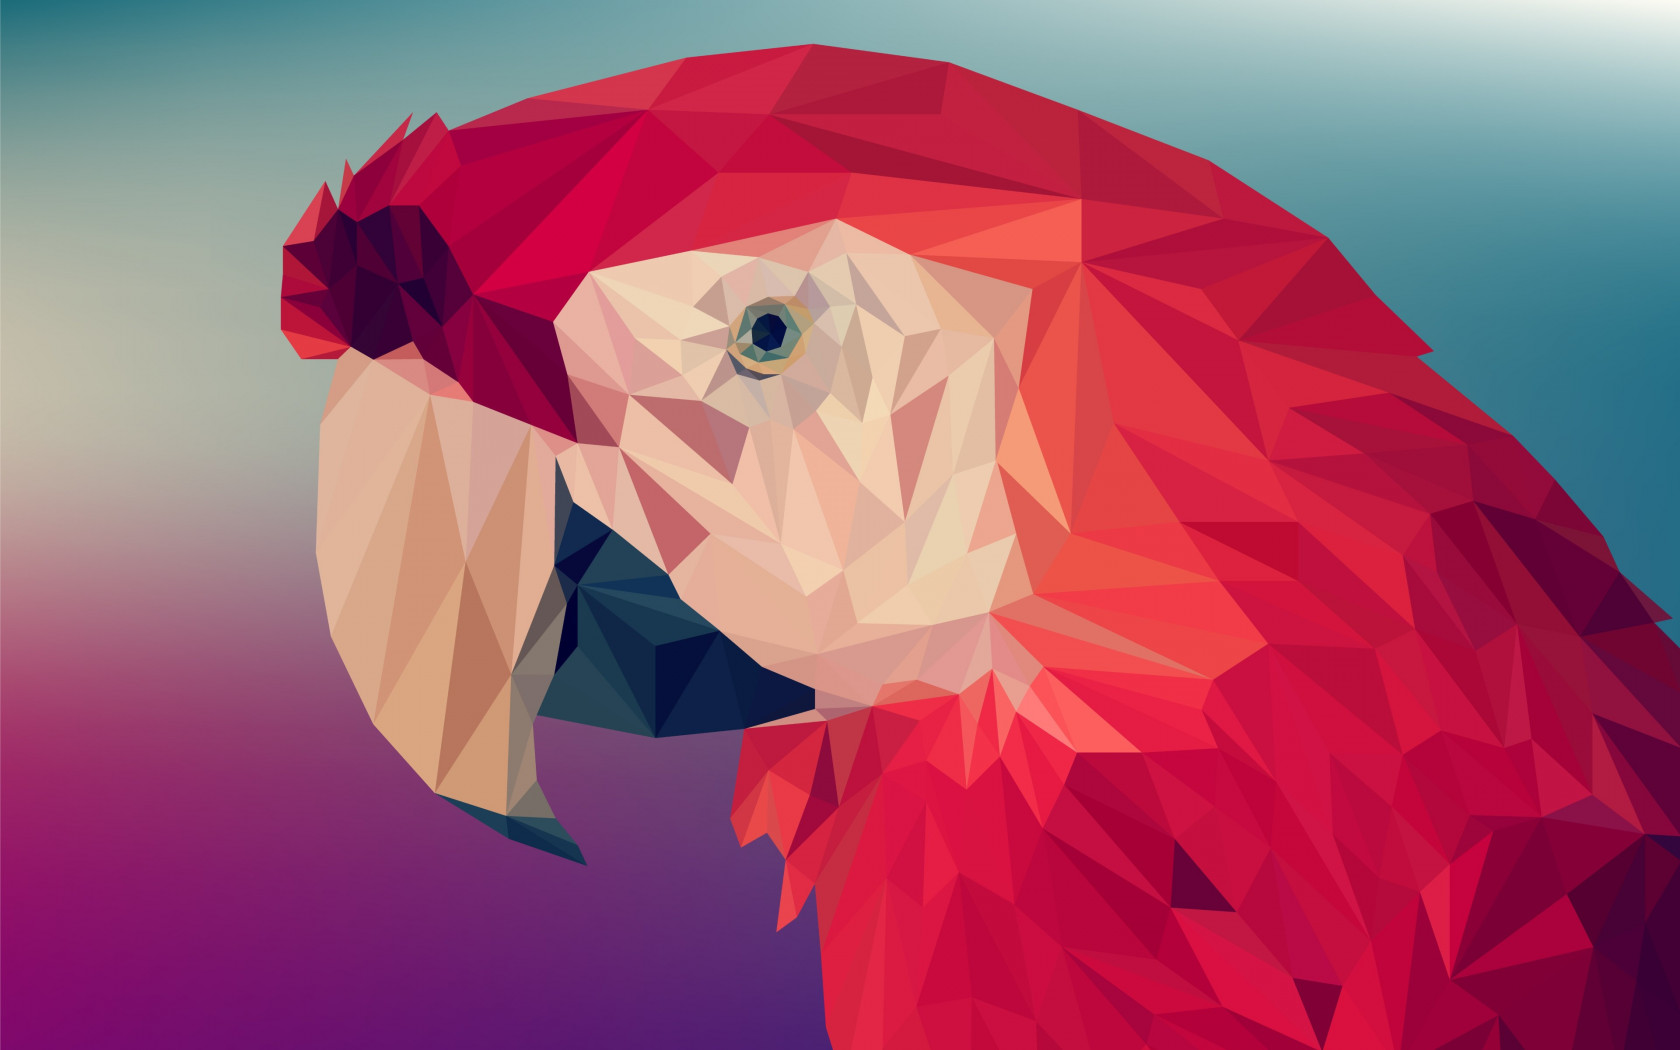 Low poly art: Red parrot wallpaper 1680x1050